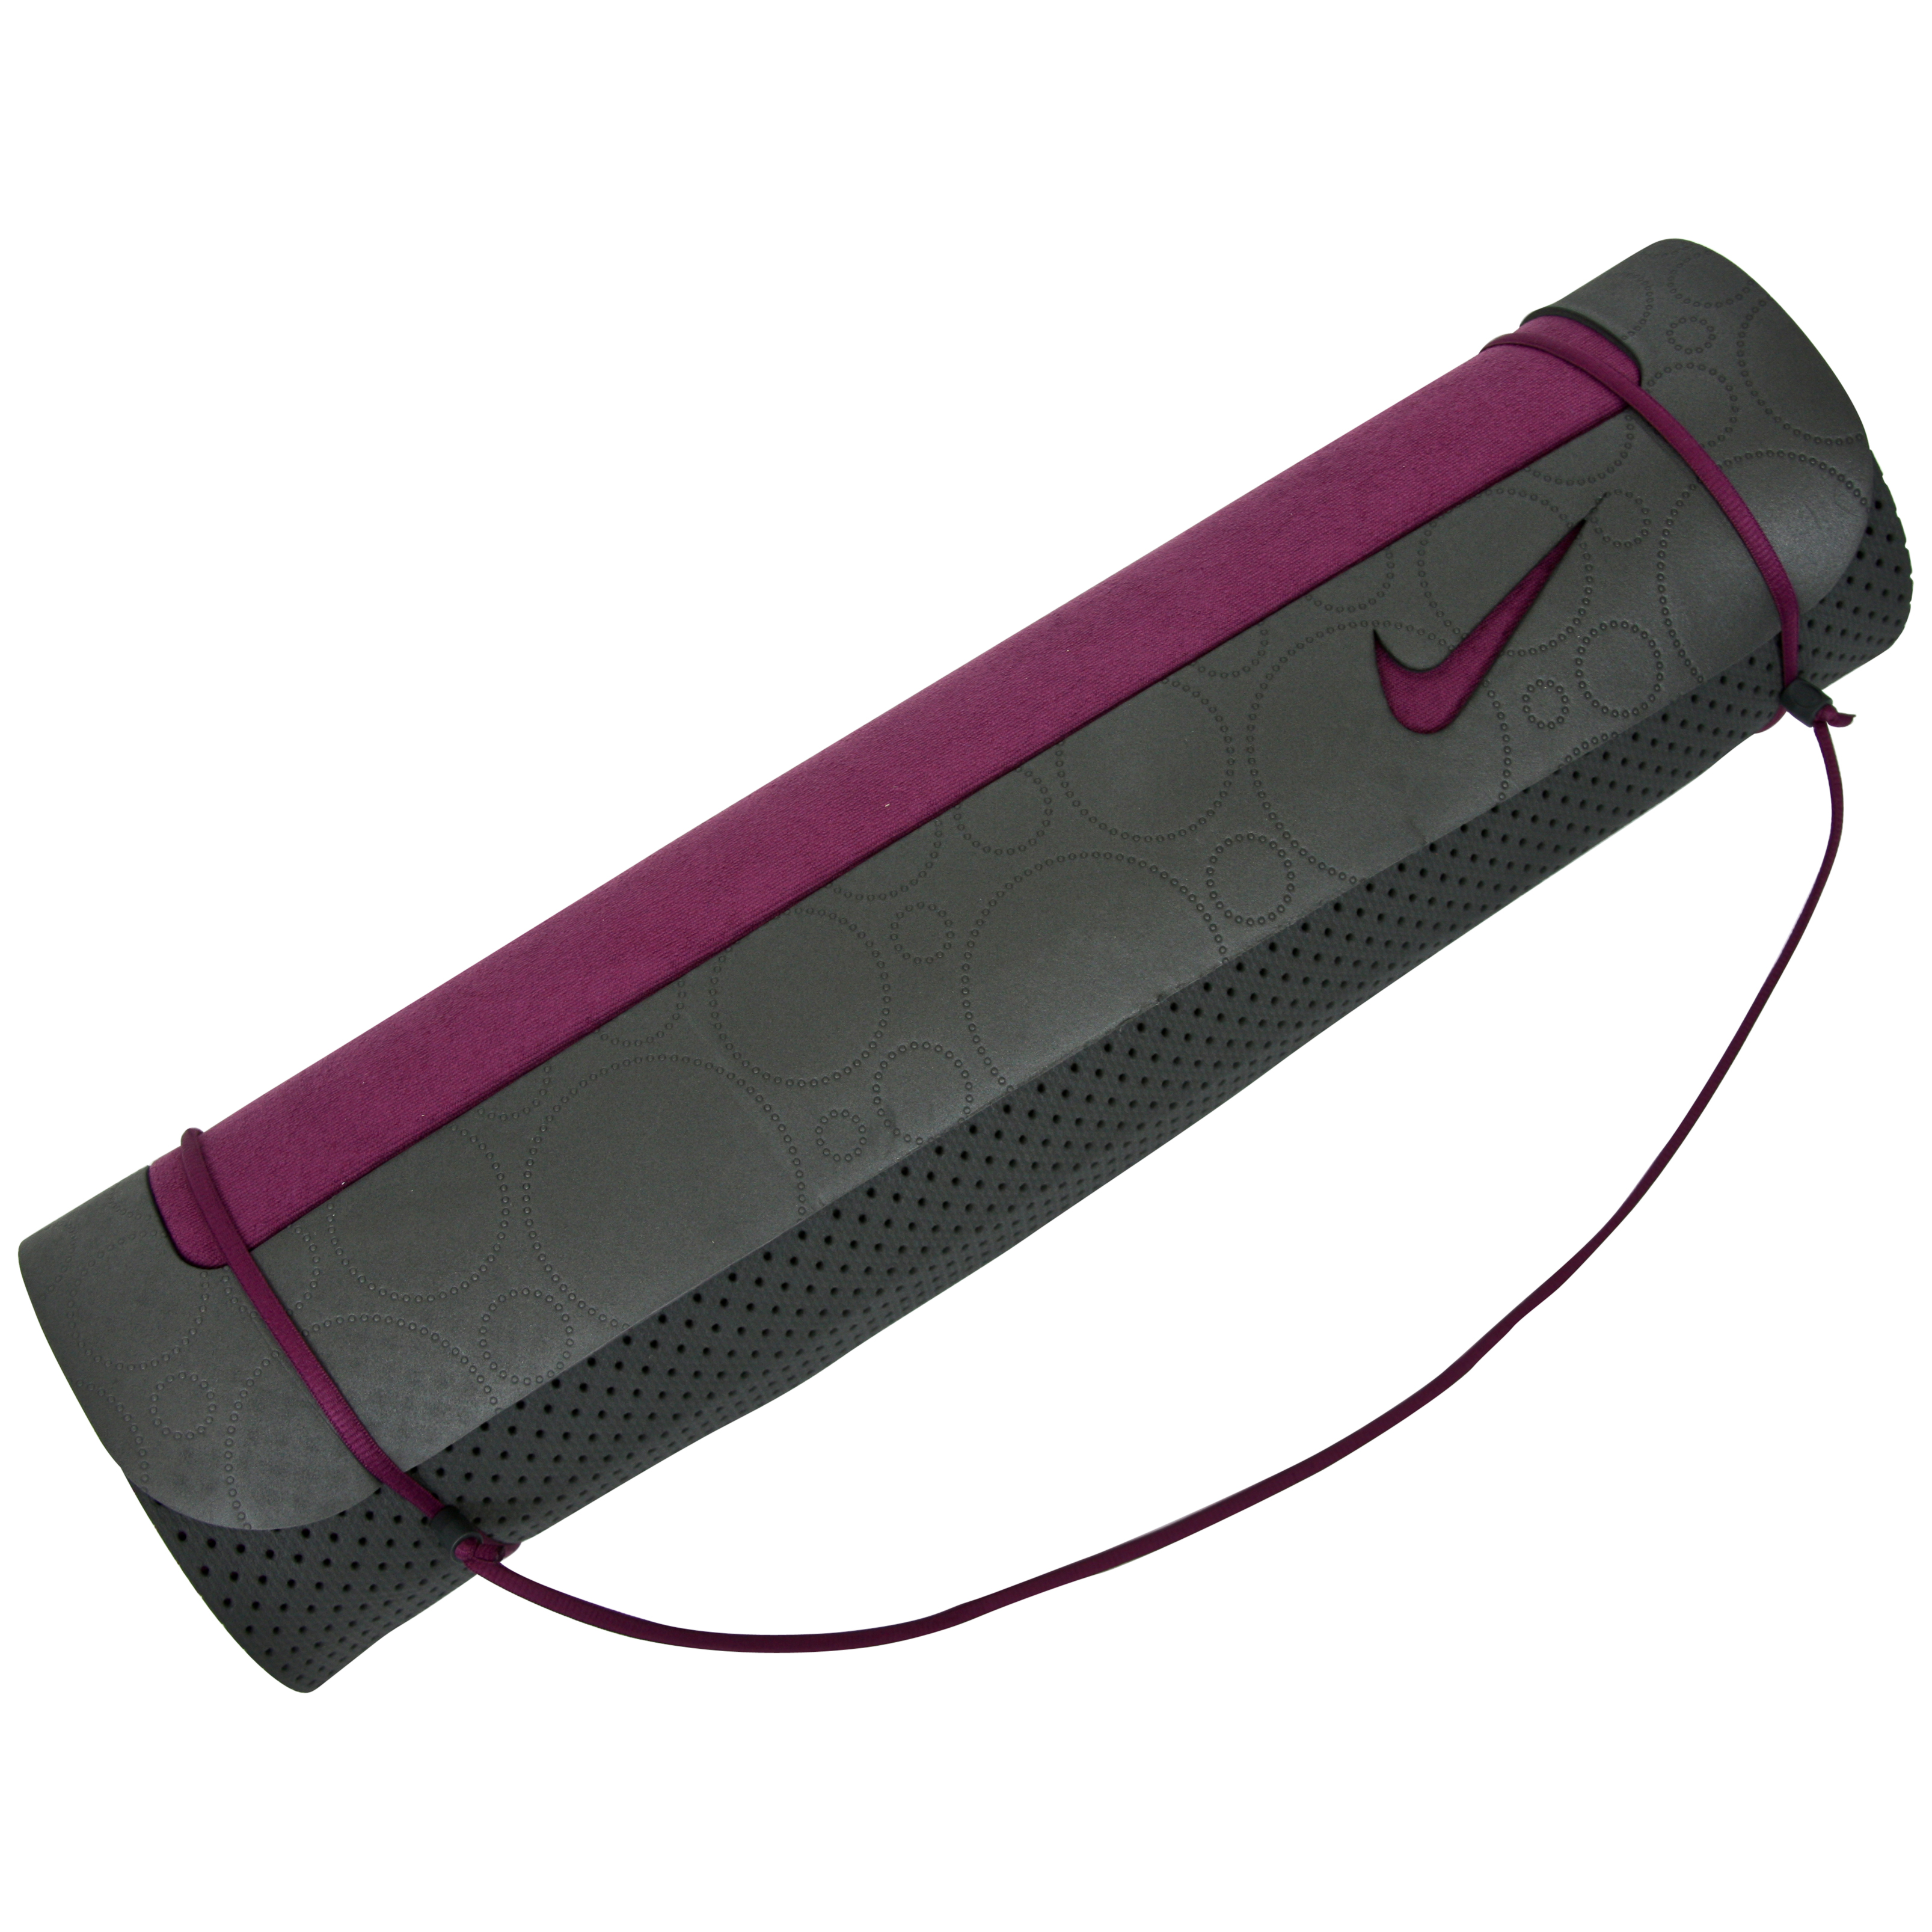 Nike Ultimate Pilates Mat 8mm - Mulberry/Anthracite